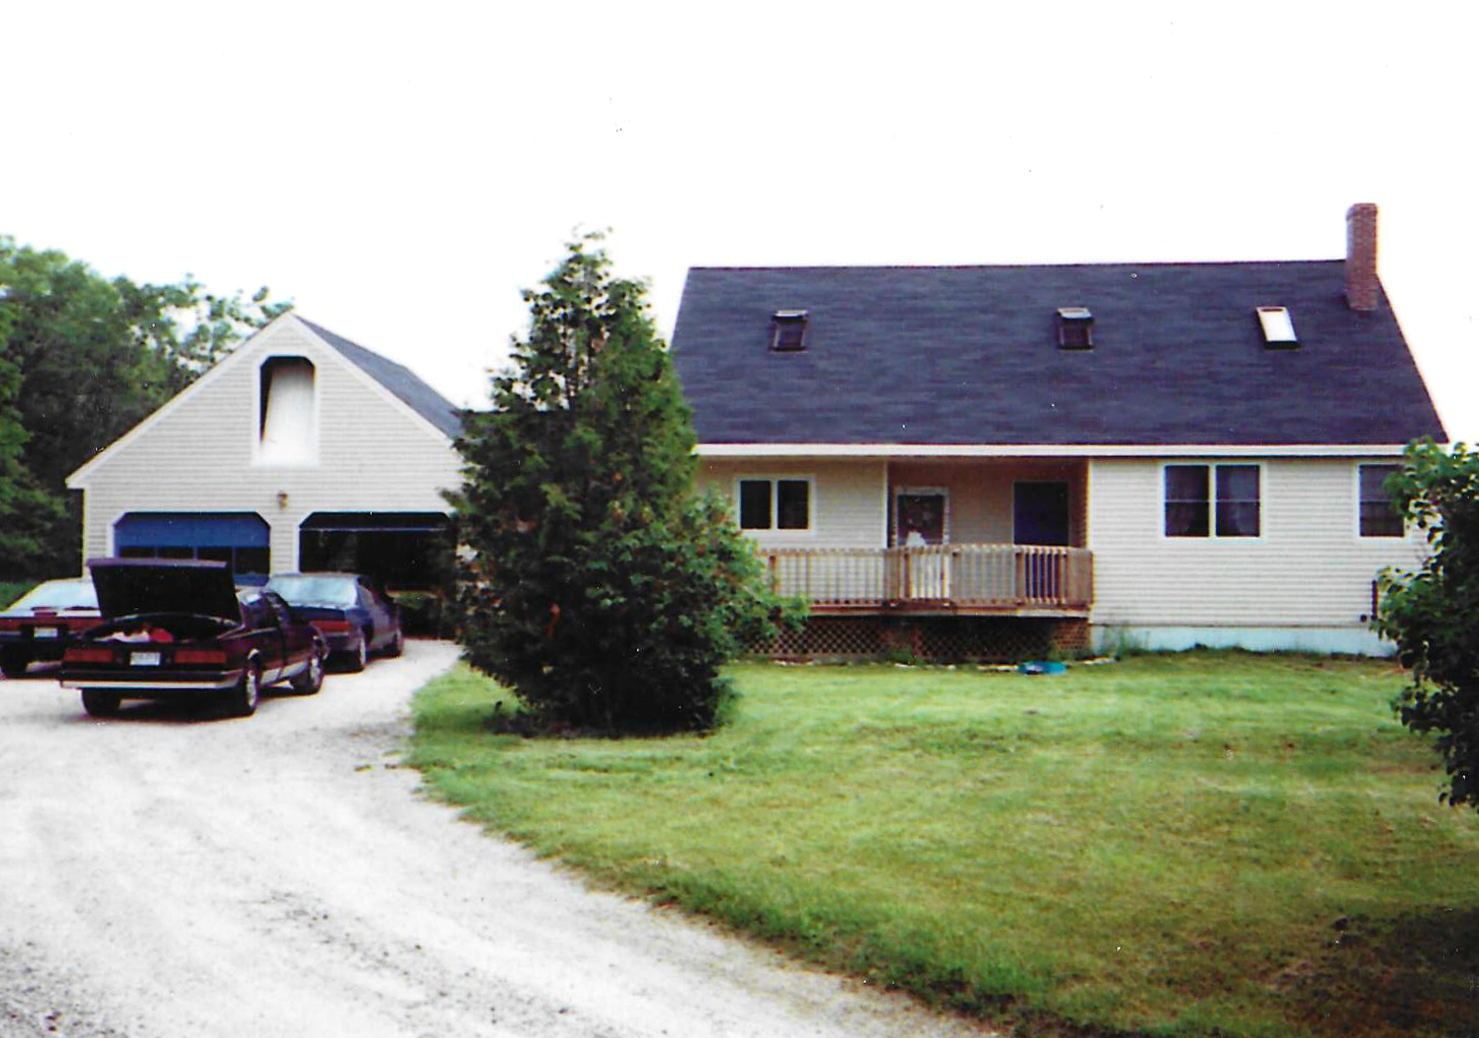 The Mannings first home. Built in Raymond, Maine in 1987.